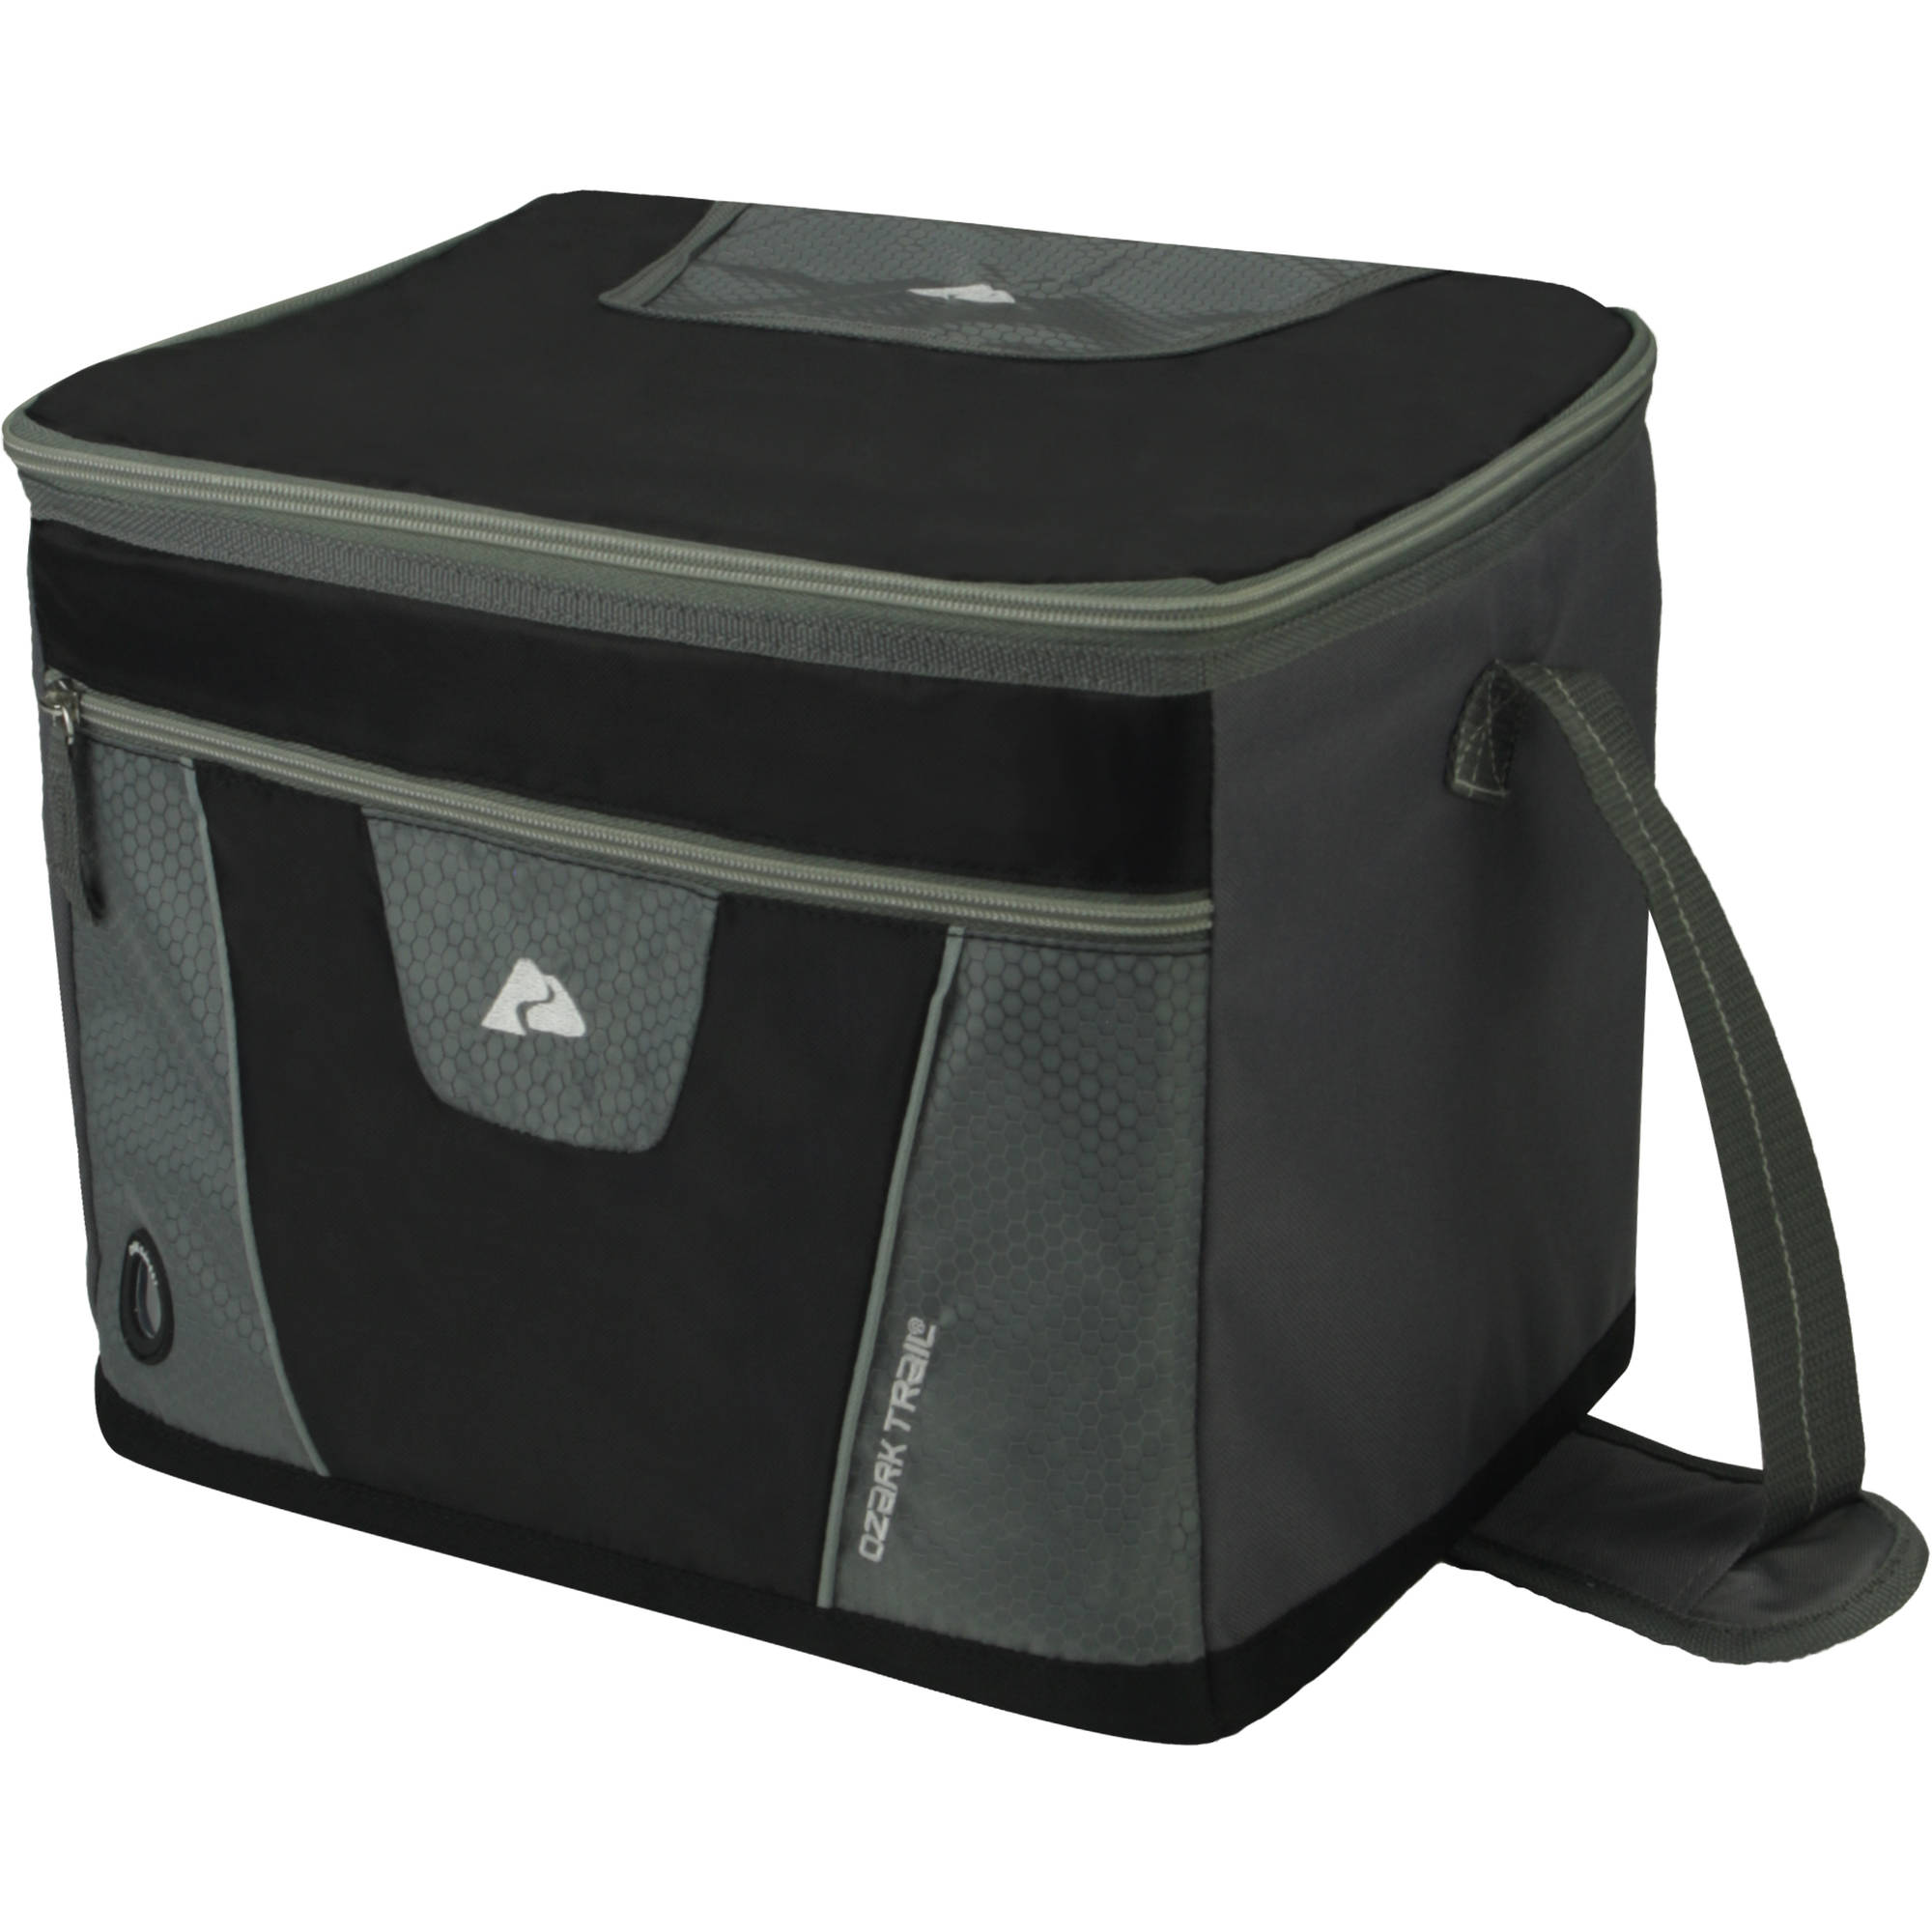 Ozark Trail 24-Can Collapsible Cooler with Cold Sensor